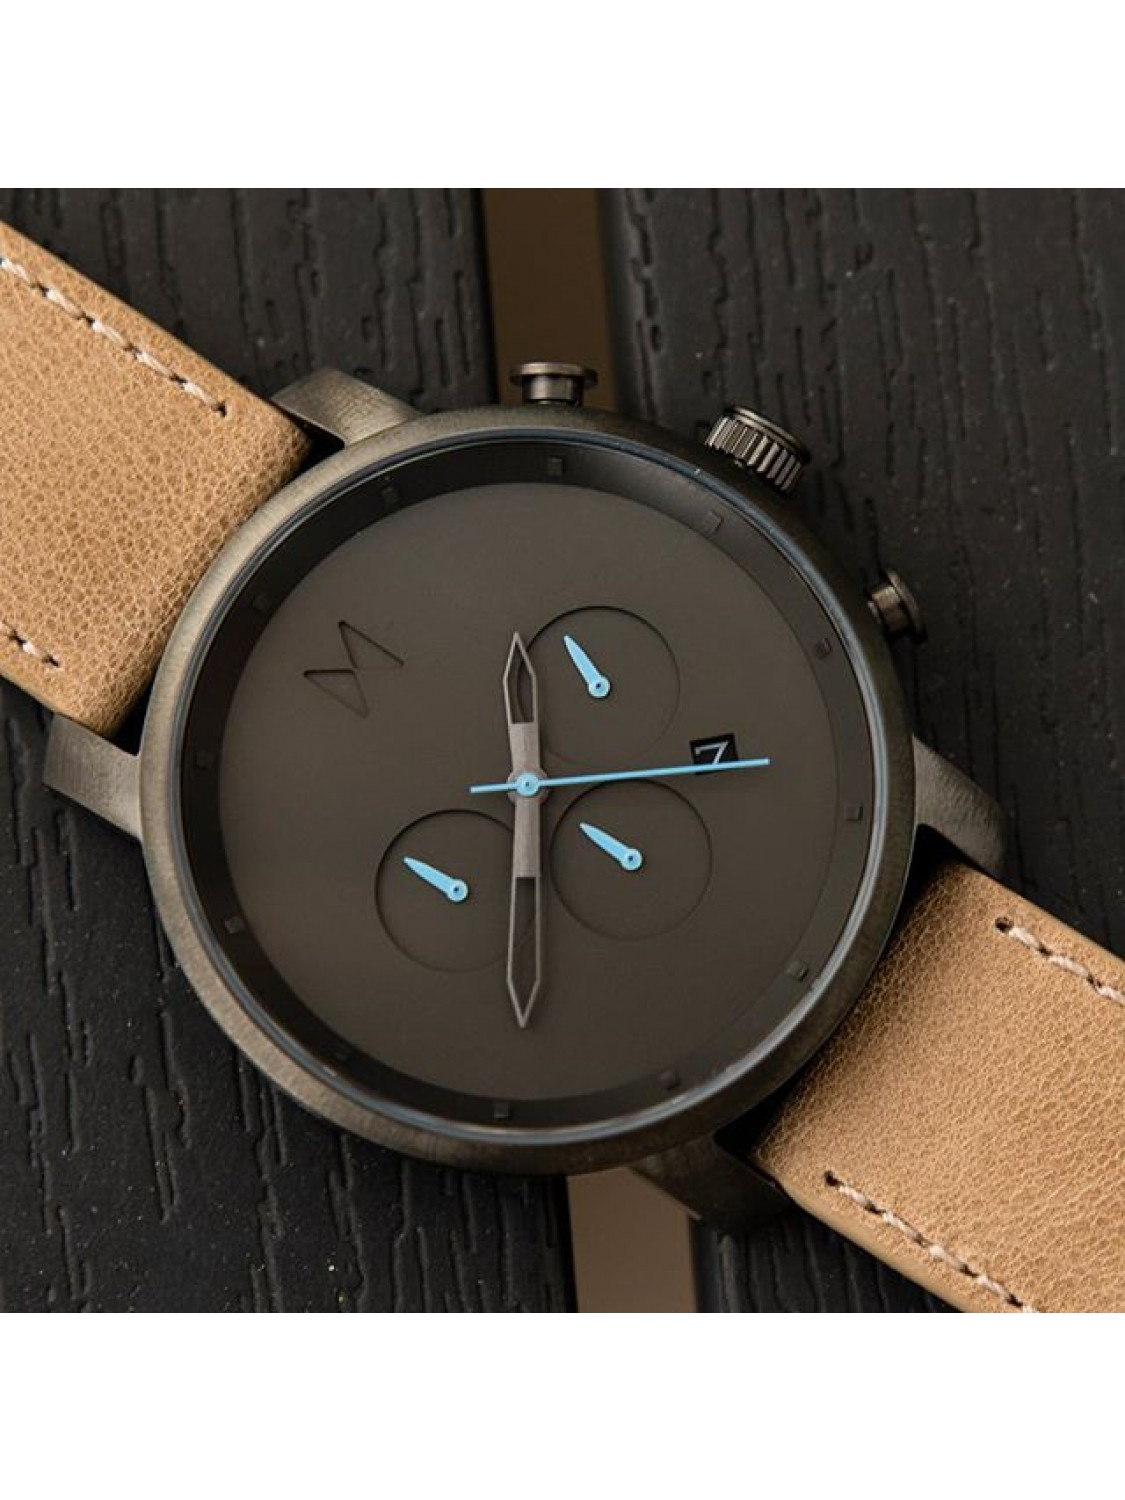 MVMT Chrono Gunmetal/Sandstone Leather-00